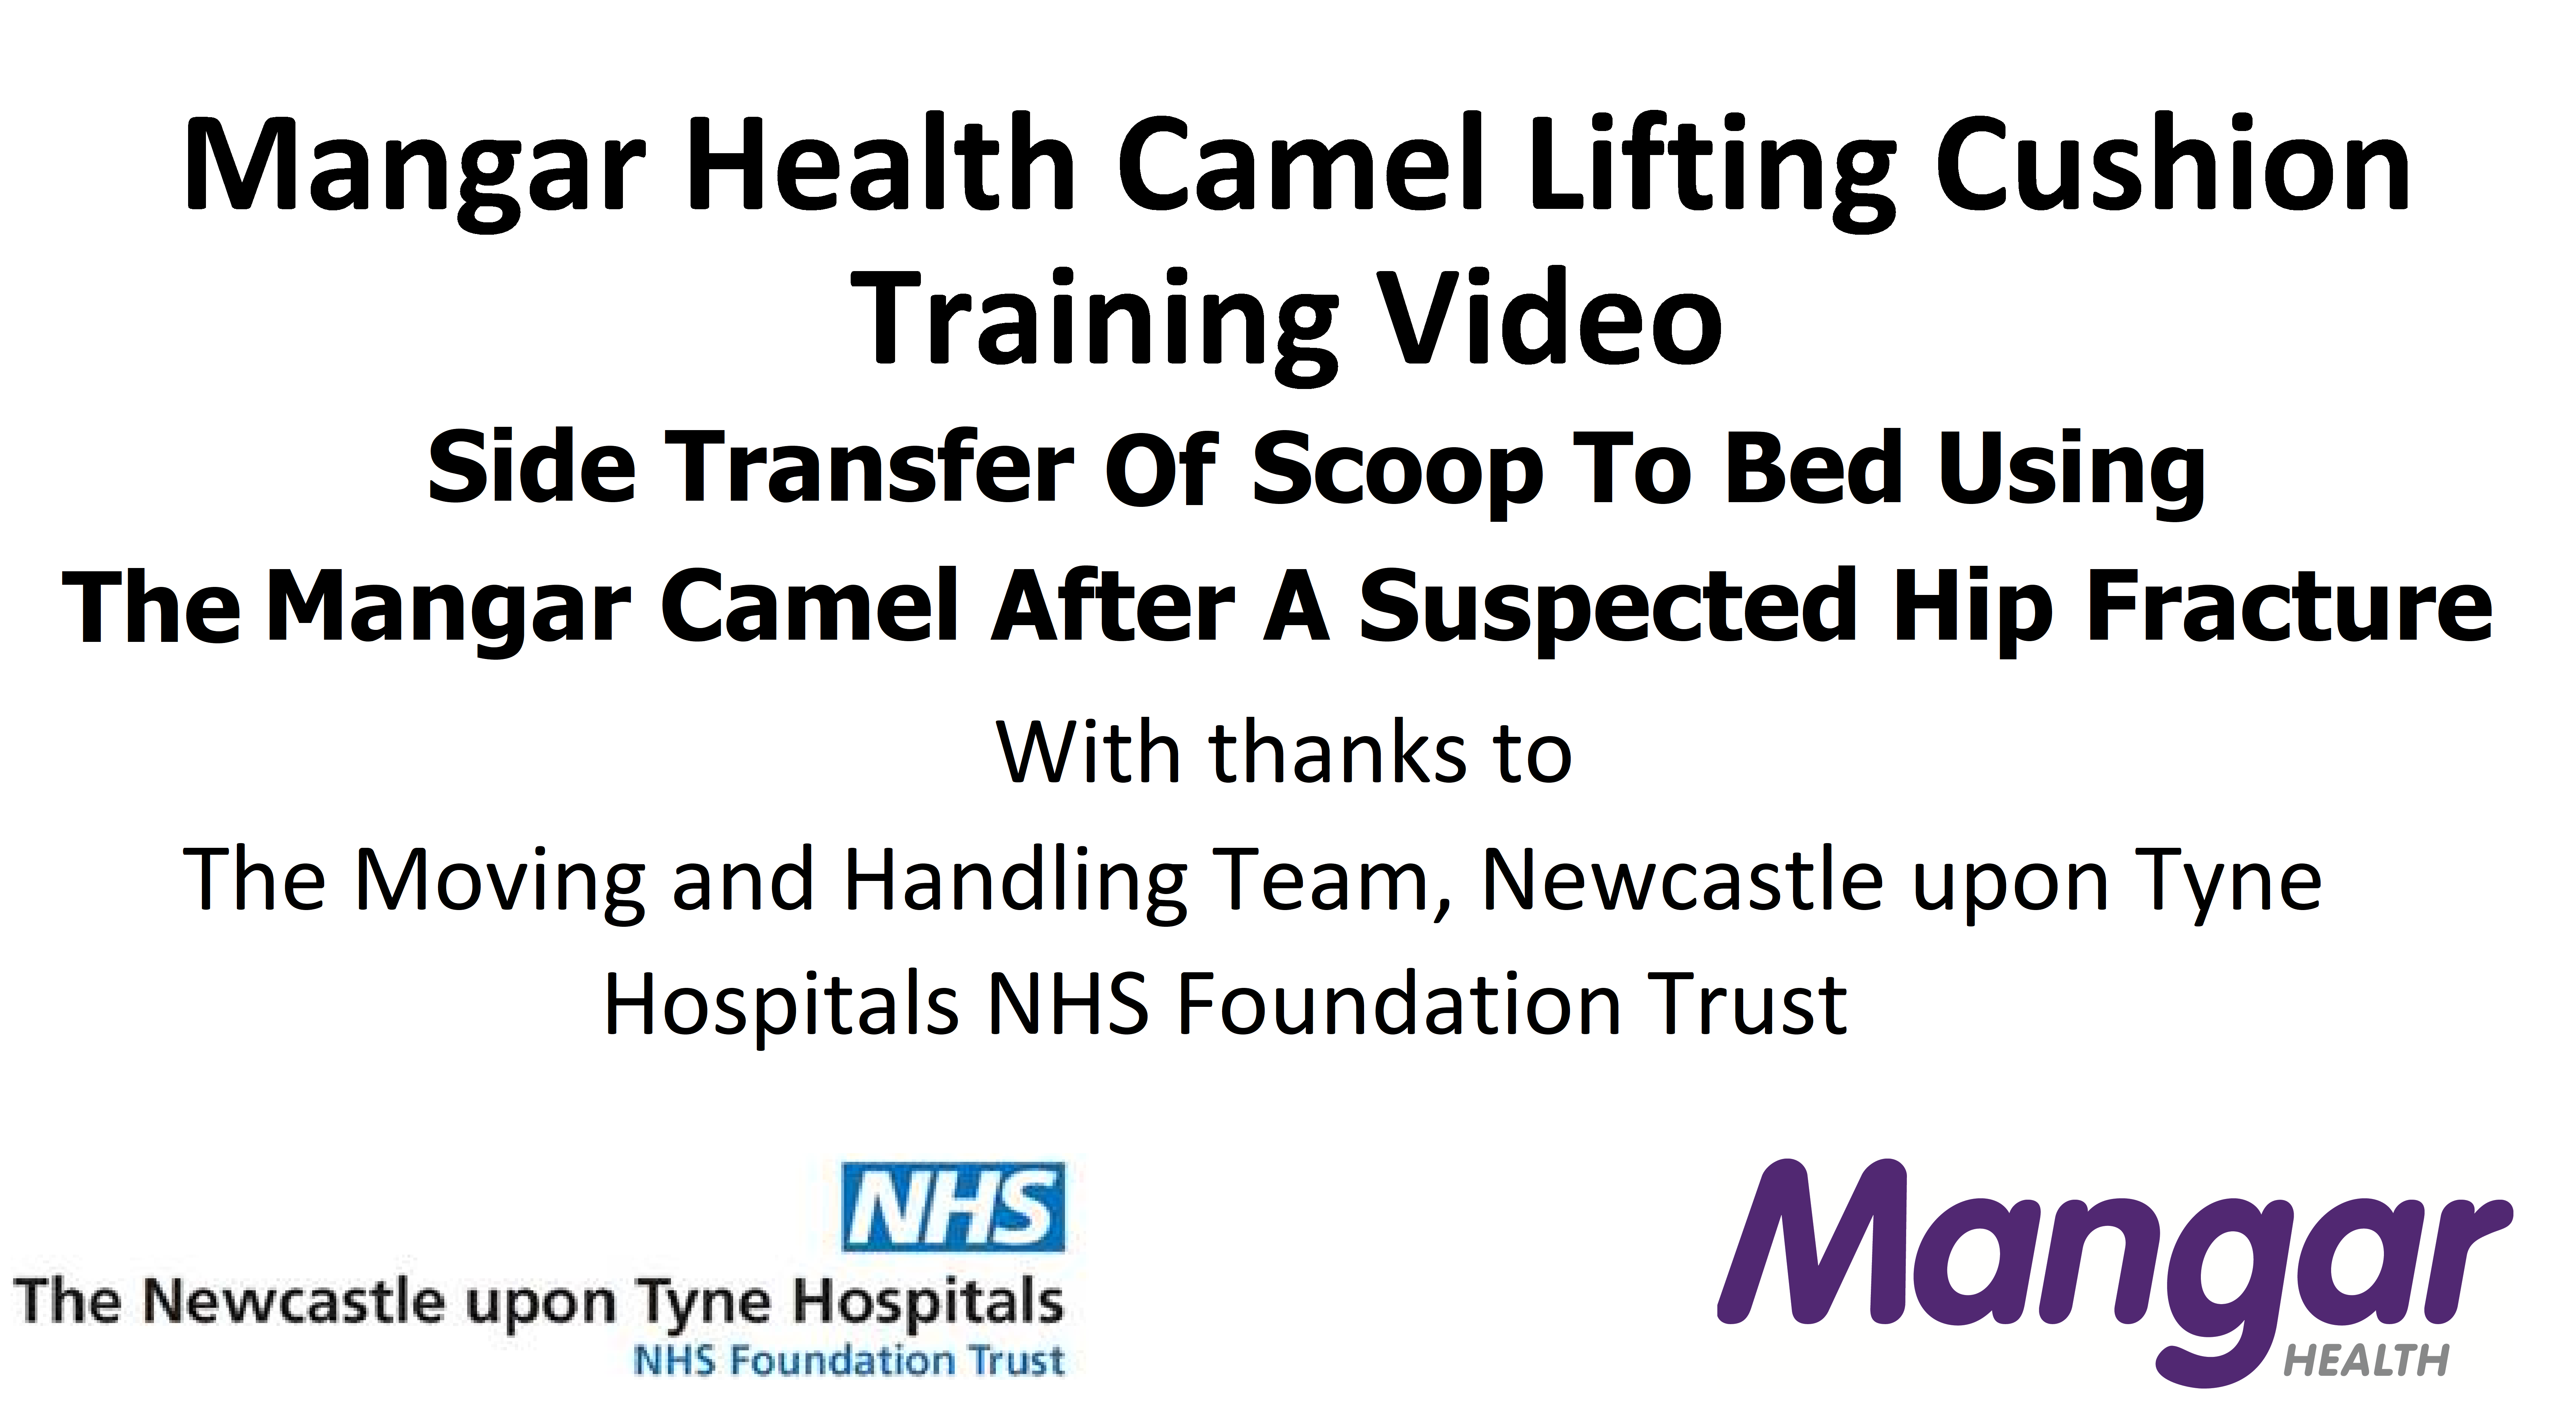 Side Transfer Of Scoop To Bed Using The Mangar Camel After A Suspected Hip Fracture - Mangar UK